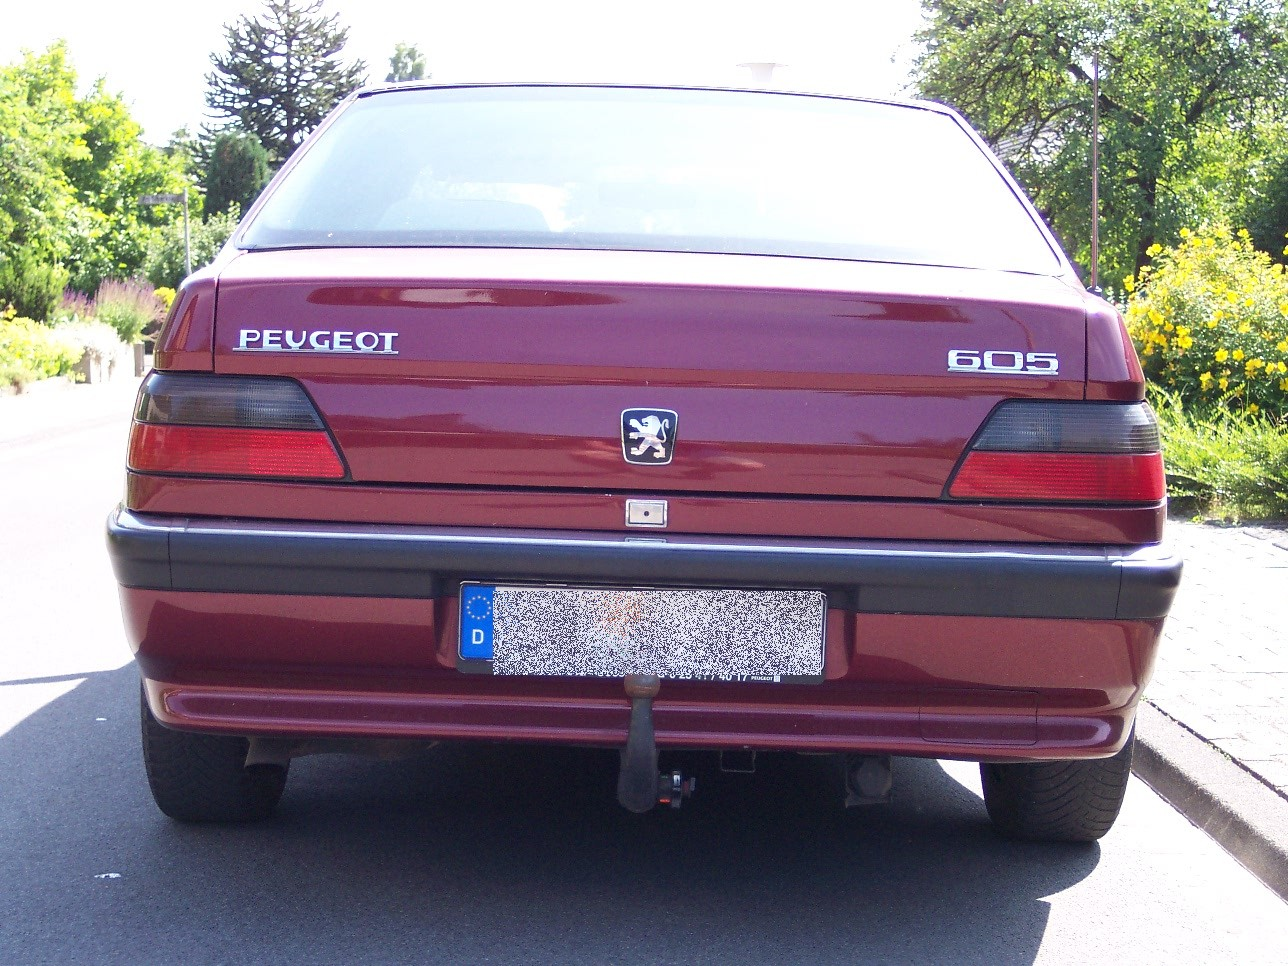 peugeot 605 pictures #5